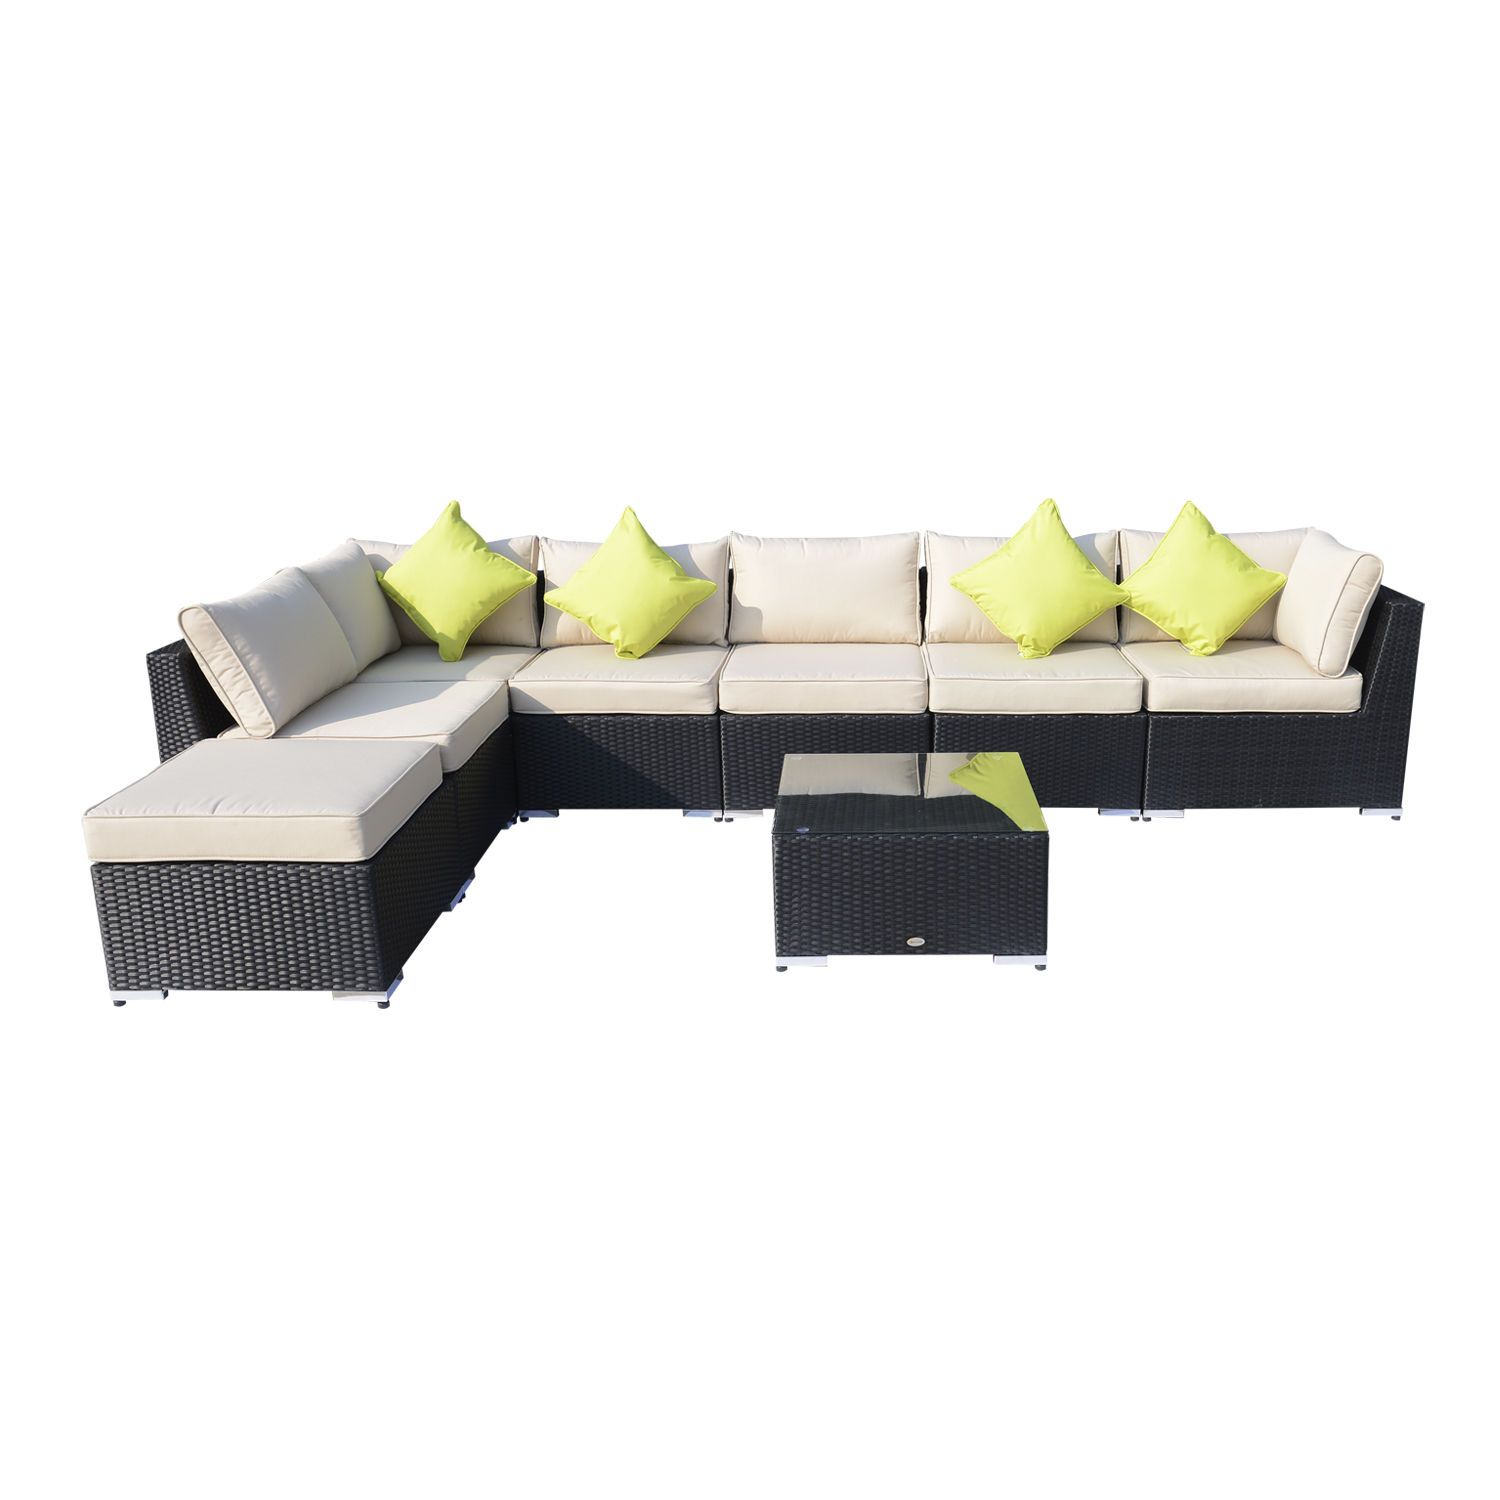 Rattan Corner Sofa Set Ebay Rattan Outdoor Garden Furniture Patio Corner Sofa Set